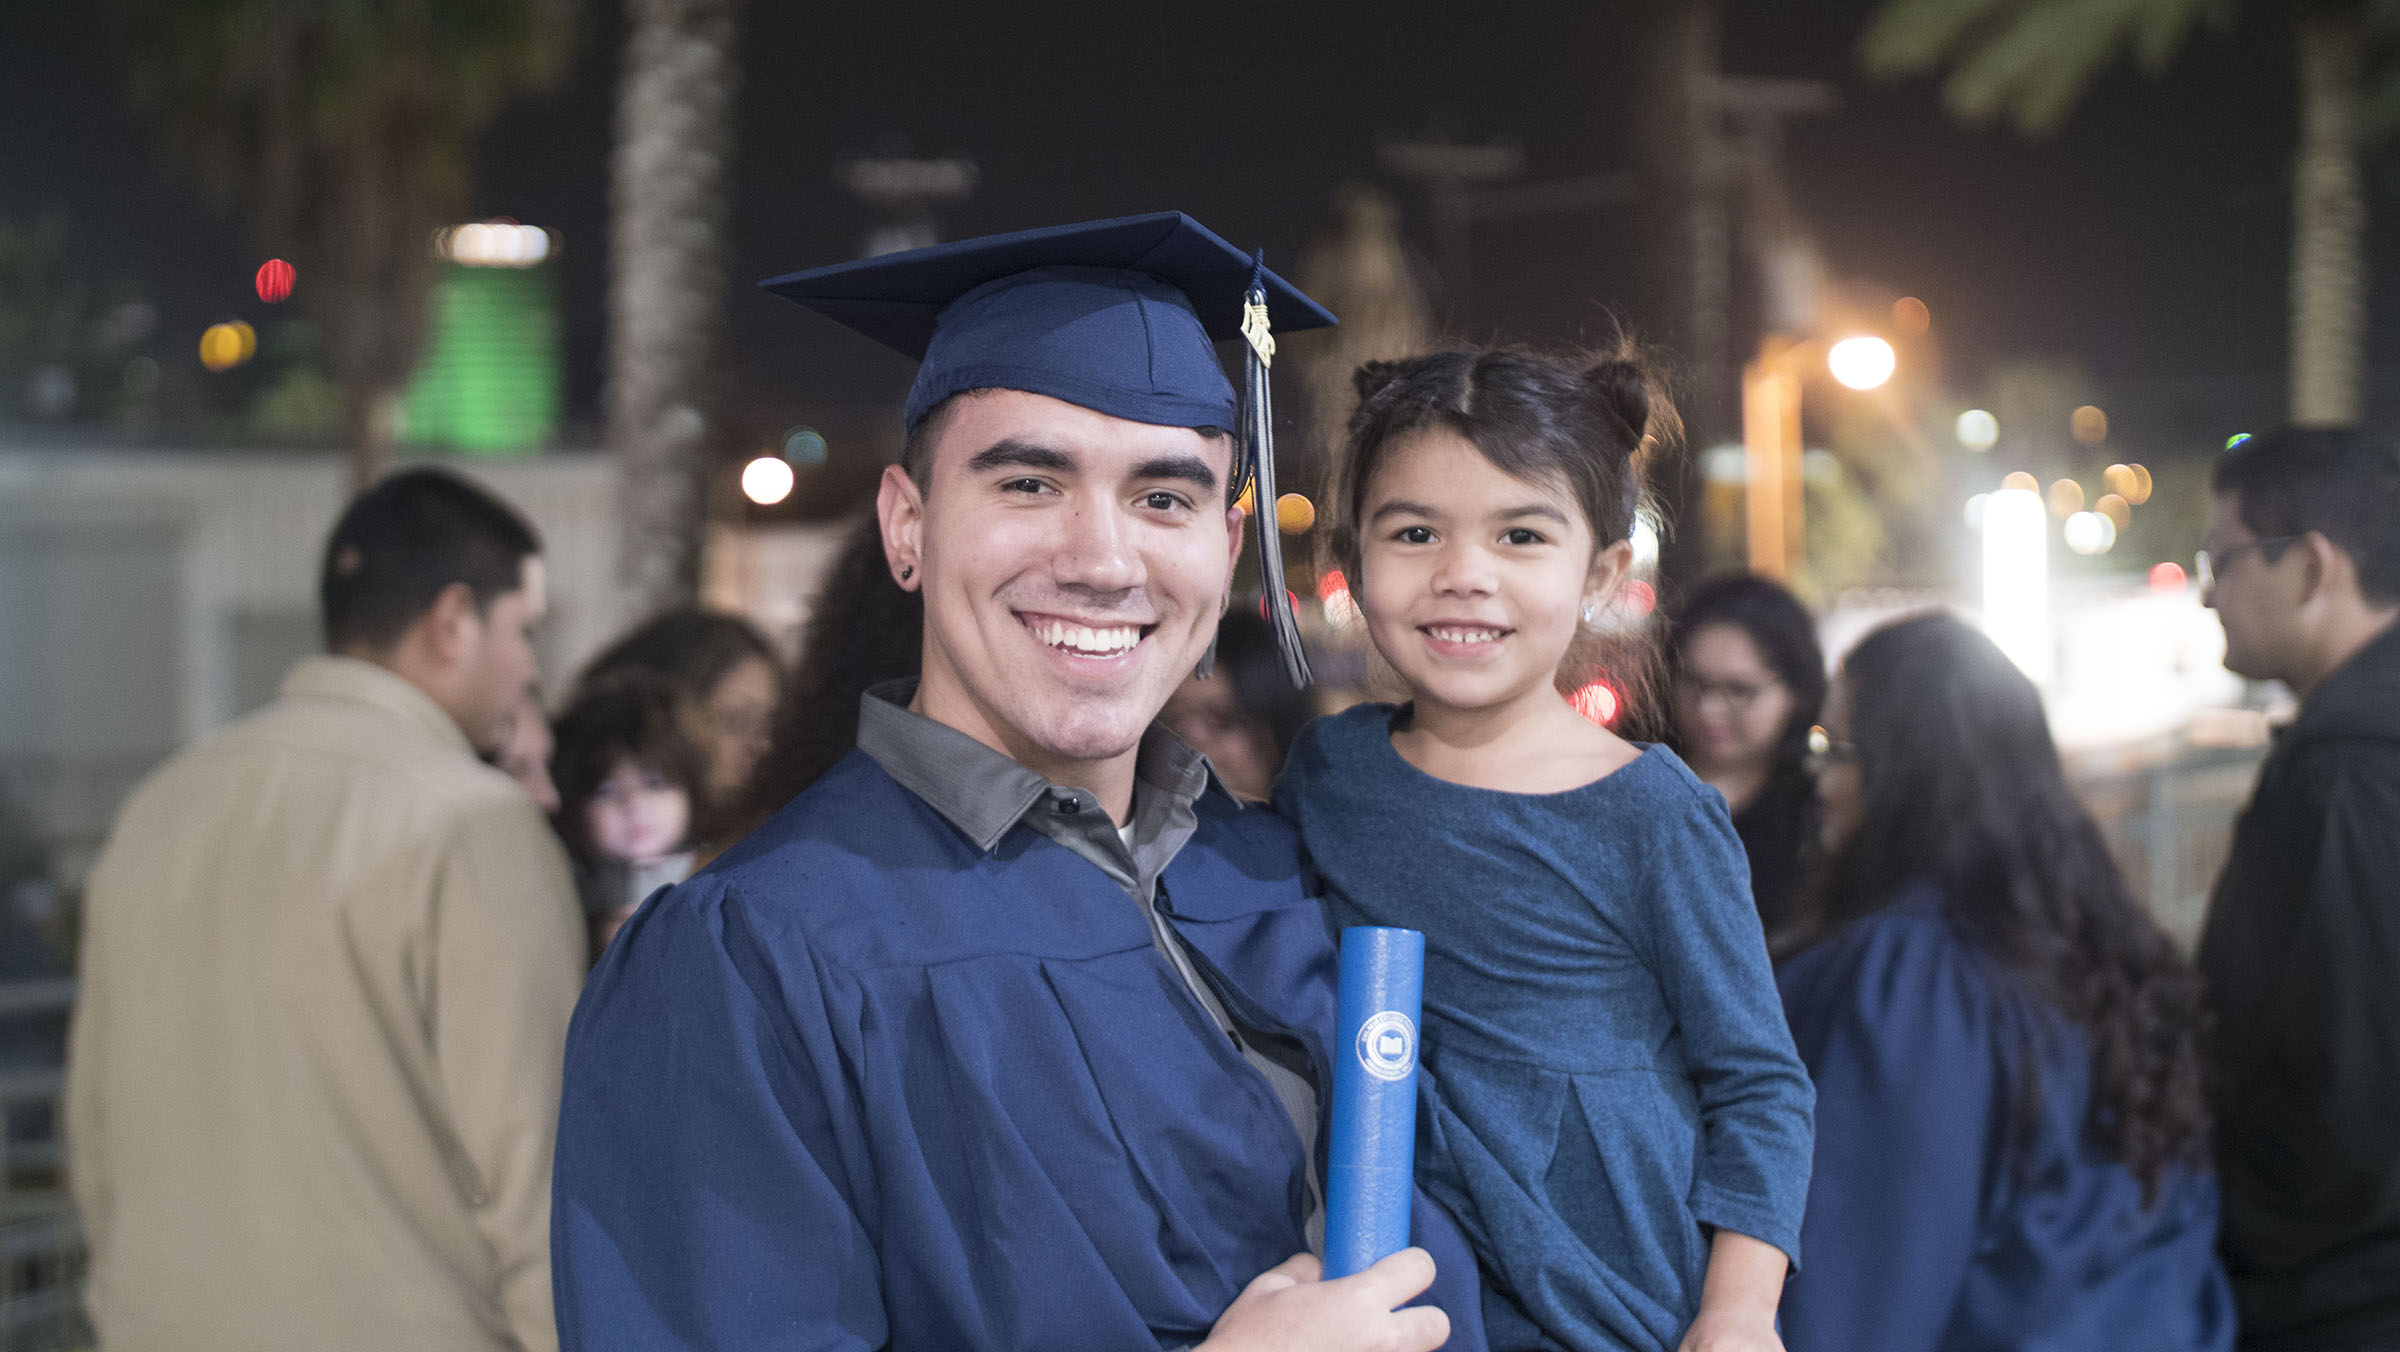 A smiling student poses in cap and gown while holding his degree and a young child